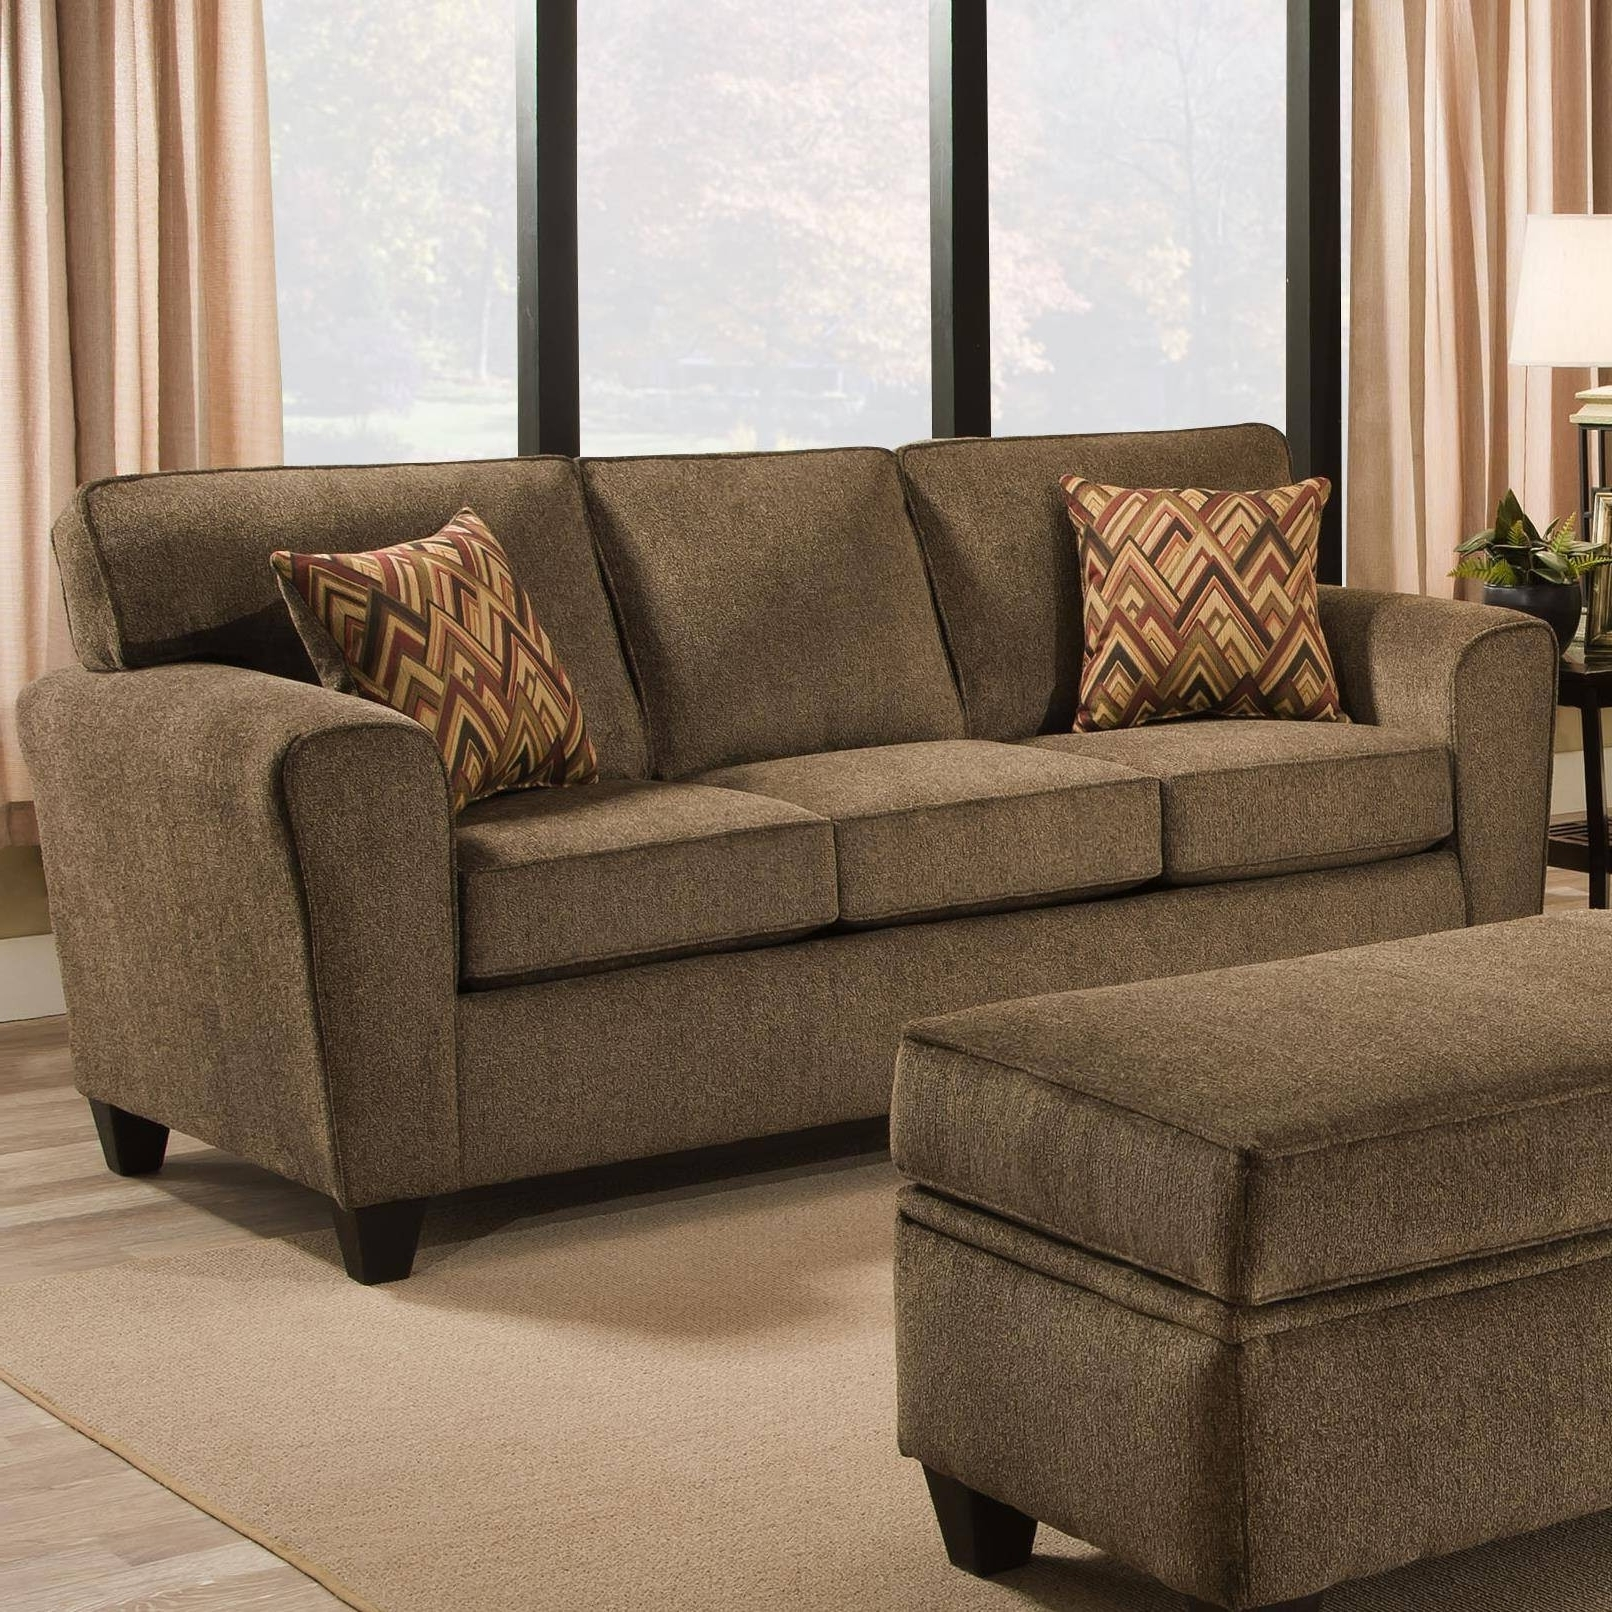 Newest Furniture : Ethan Allen Down Filled Sofa Beautiful Sectional Sofas Inside Down Filled Sofas (View 8 of 20)